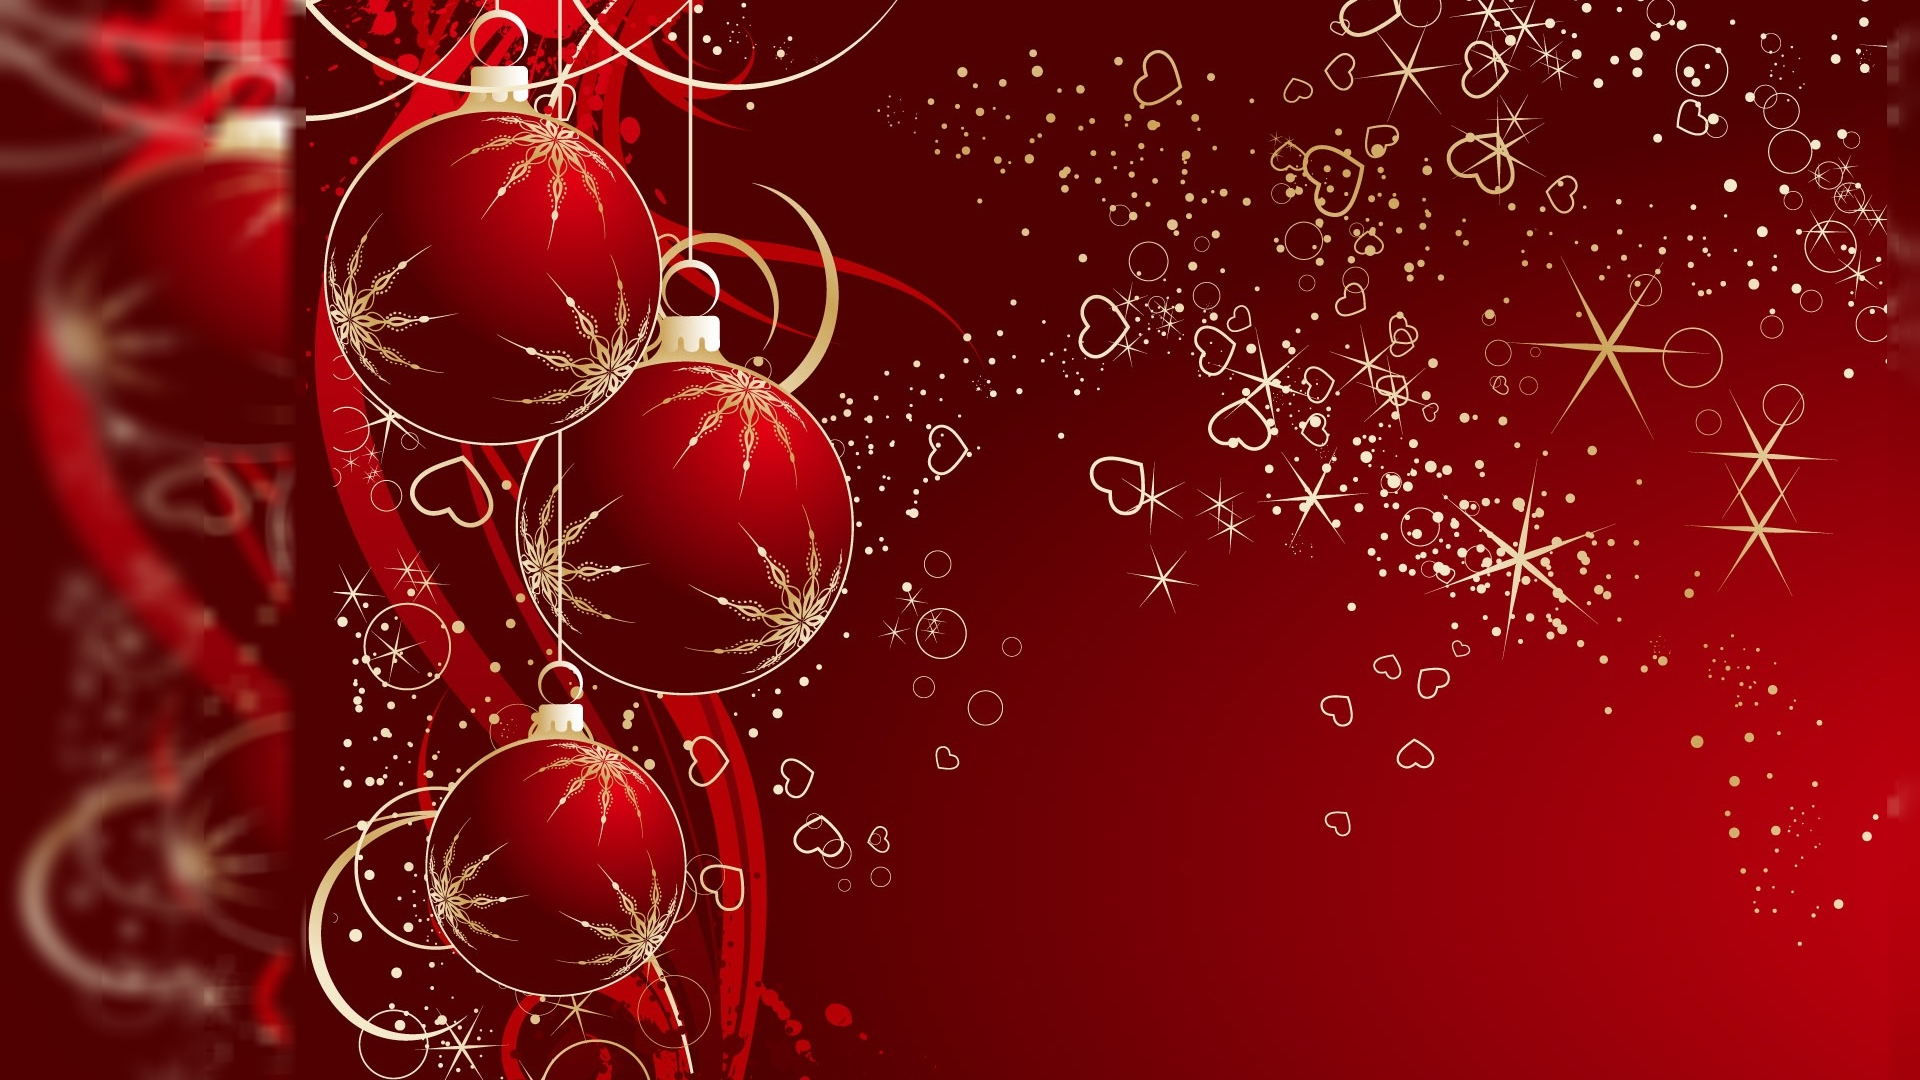 Christmas Desktop Backgrounds Christmas Desktop Backgrounds for 1920x1080